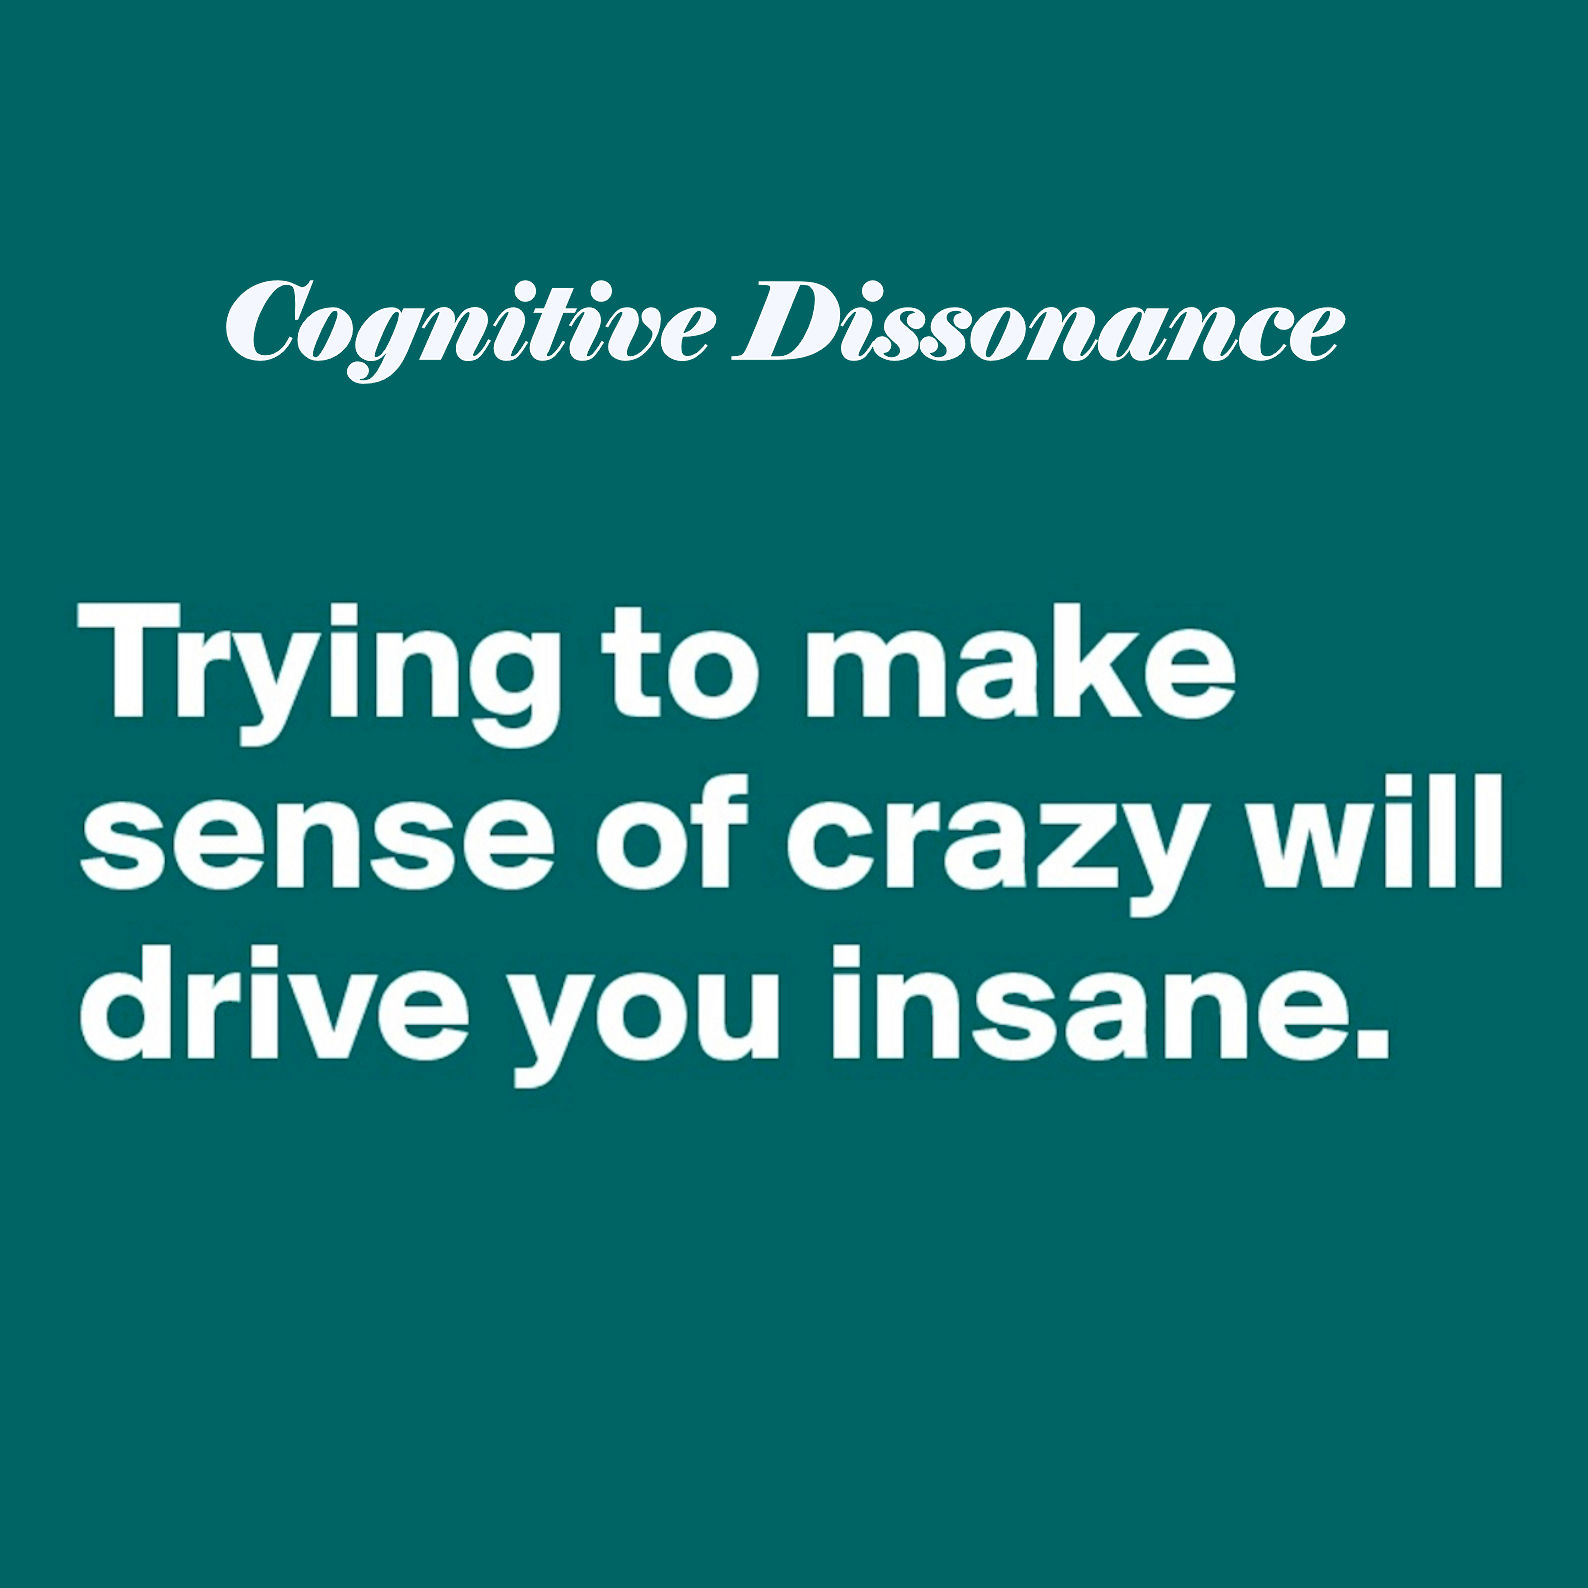 Cognitive Dissonance's adverse effects